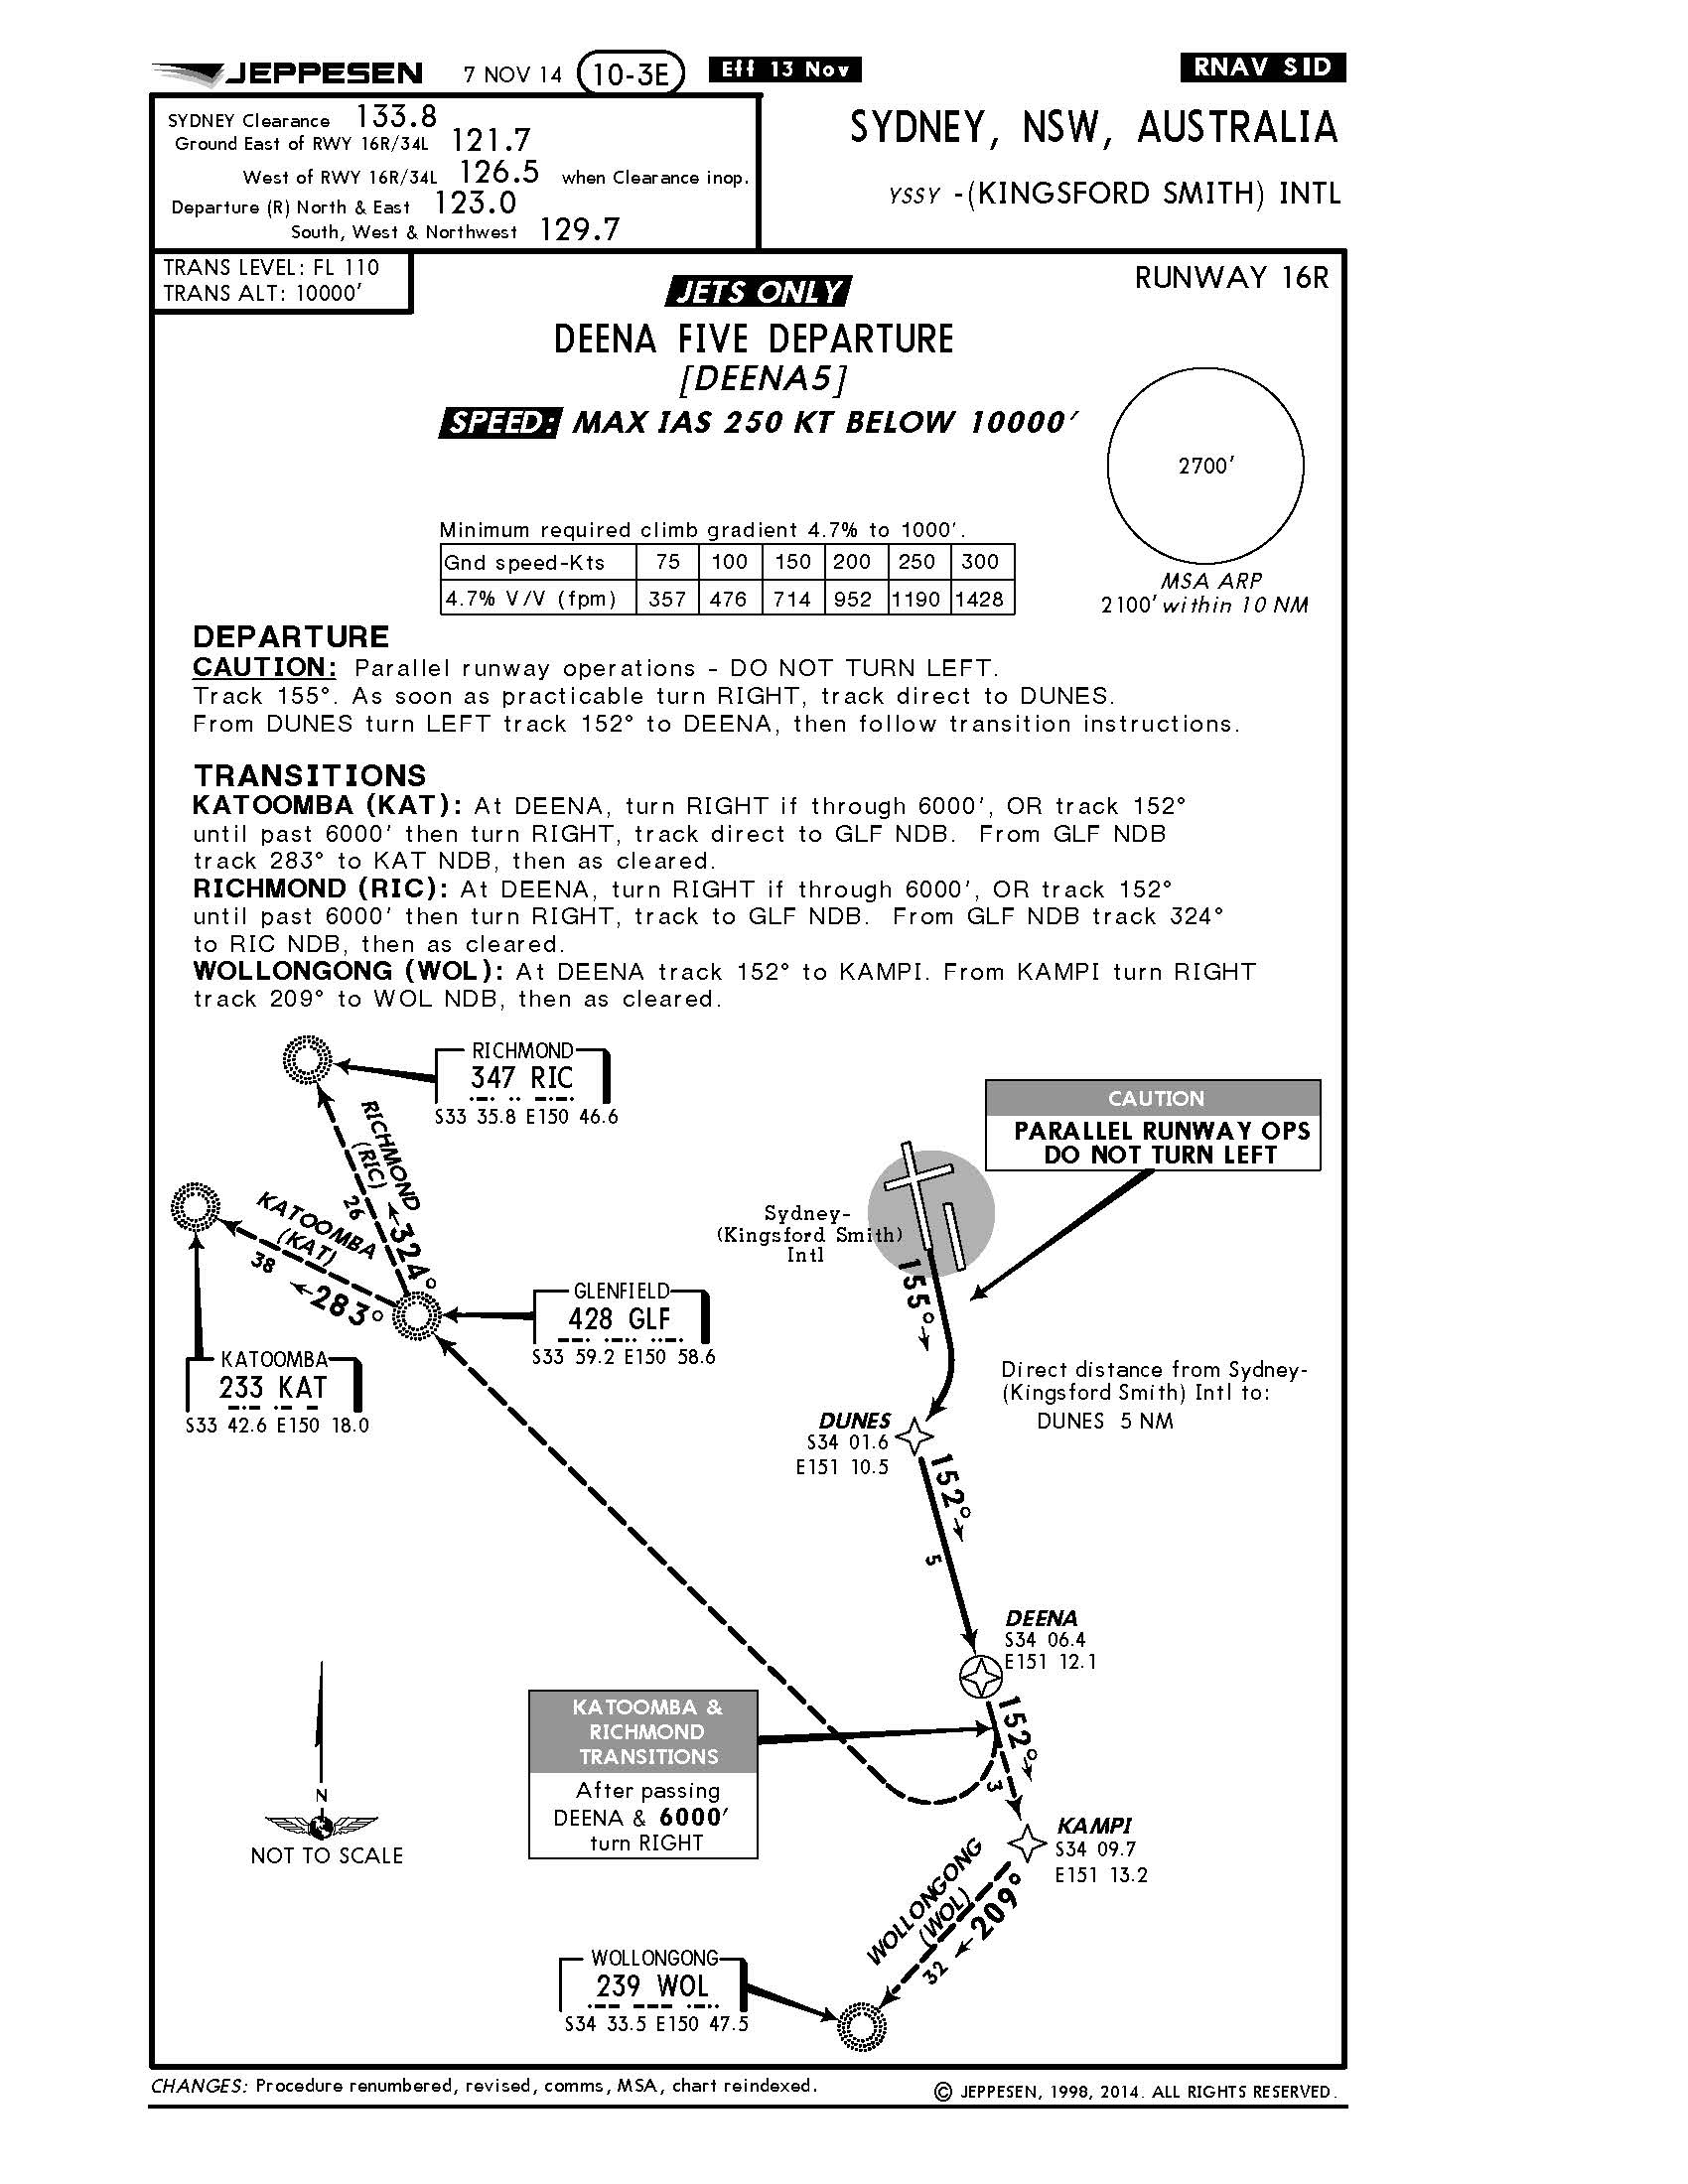 DEENA 5 standard instrument departure depicting the right turn requirement and caution regarding the parallel runway.